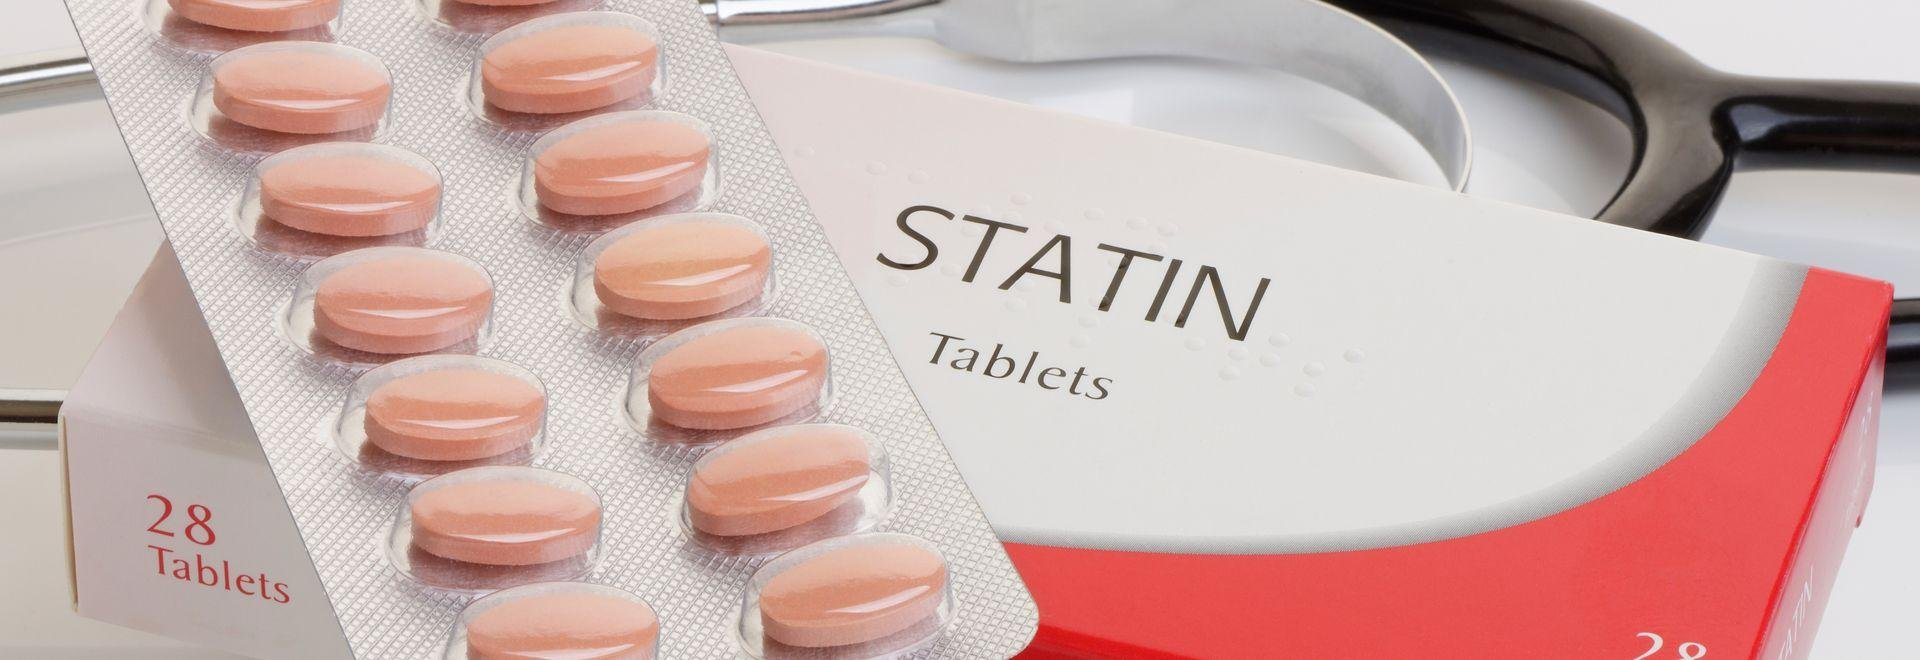 Should Diabetics Take Statins